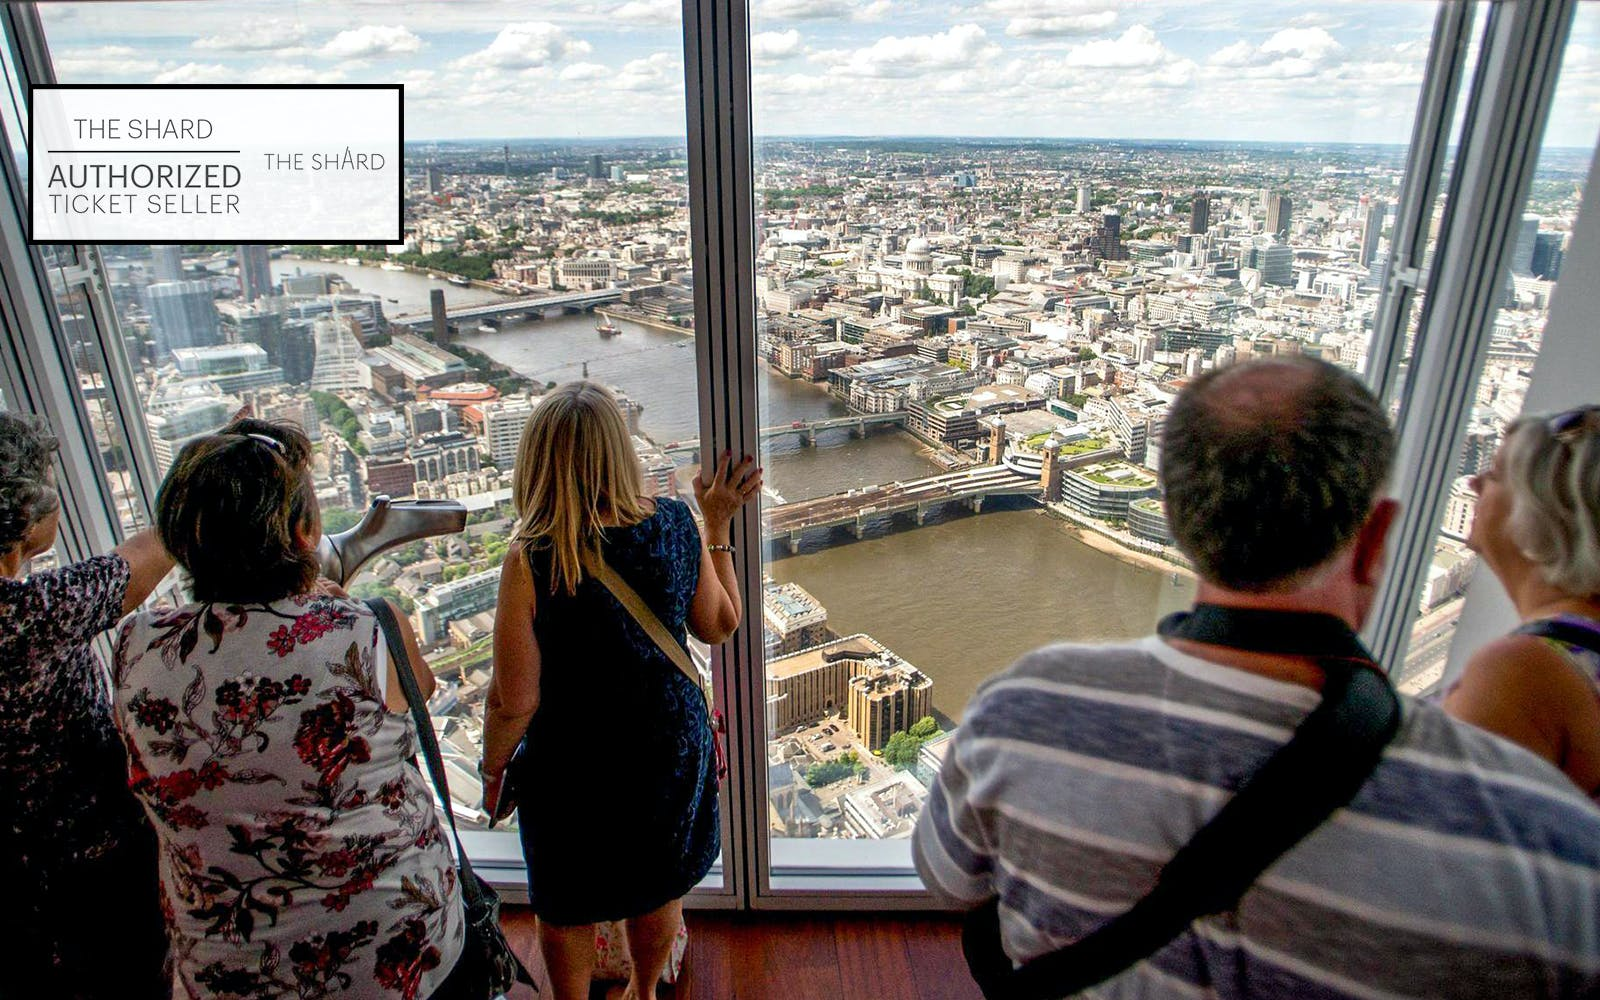 the view from the shard -2